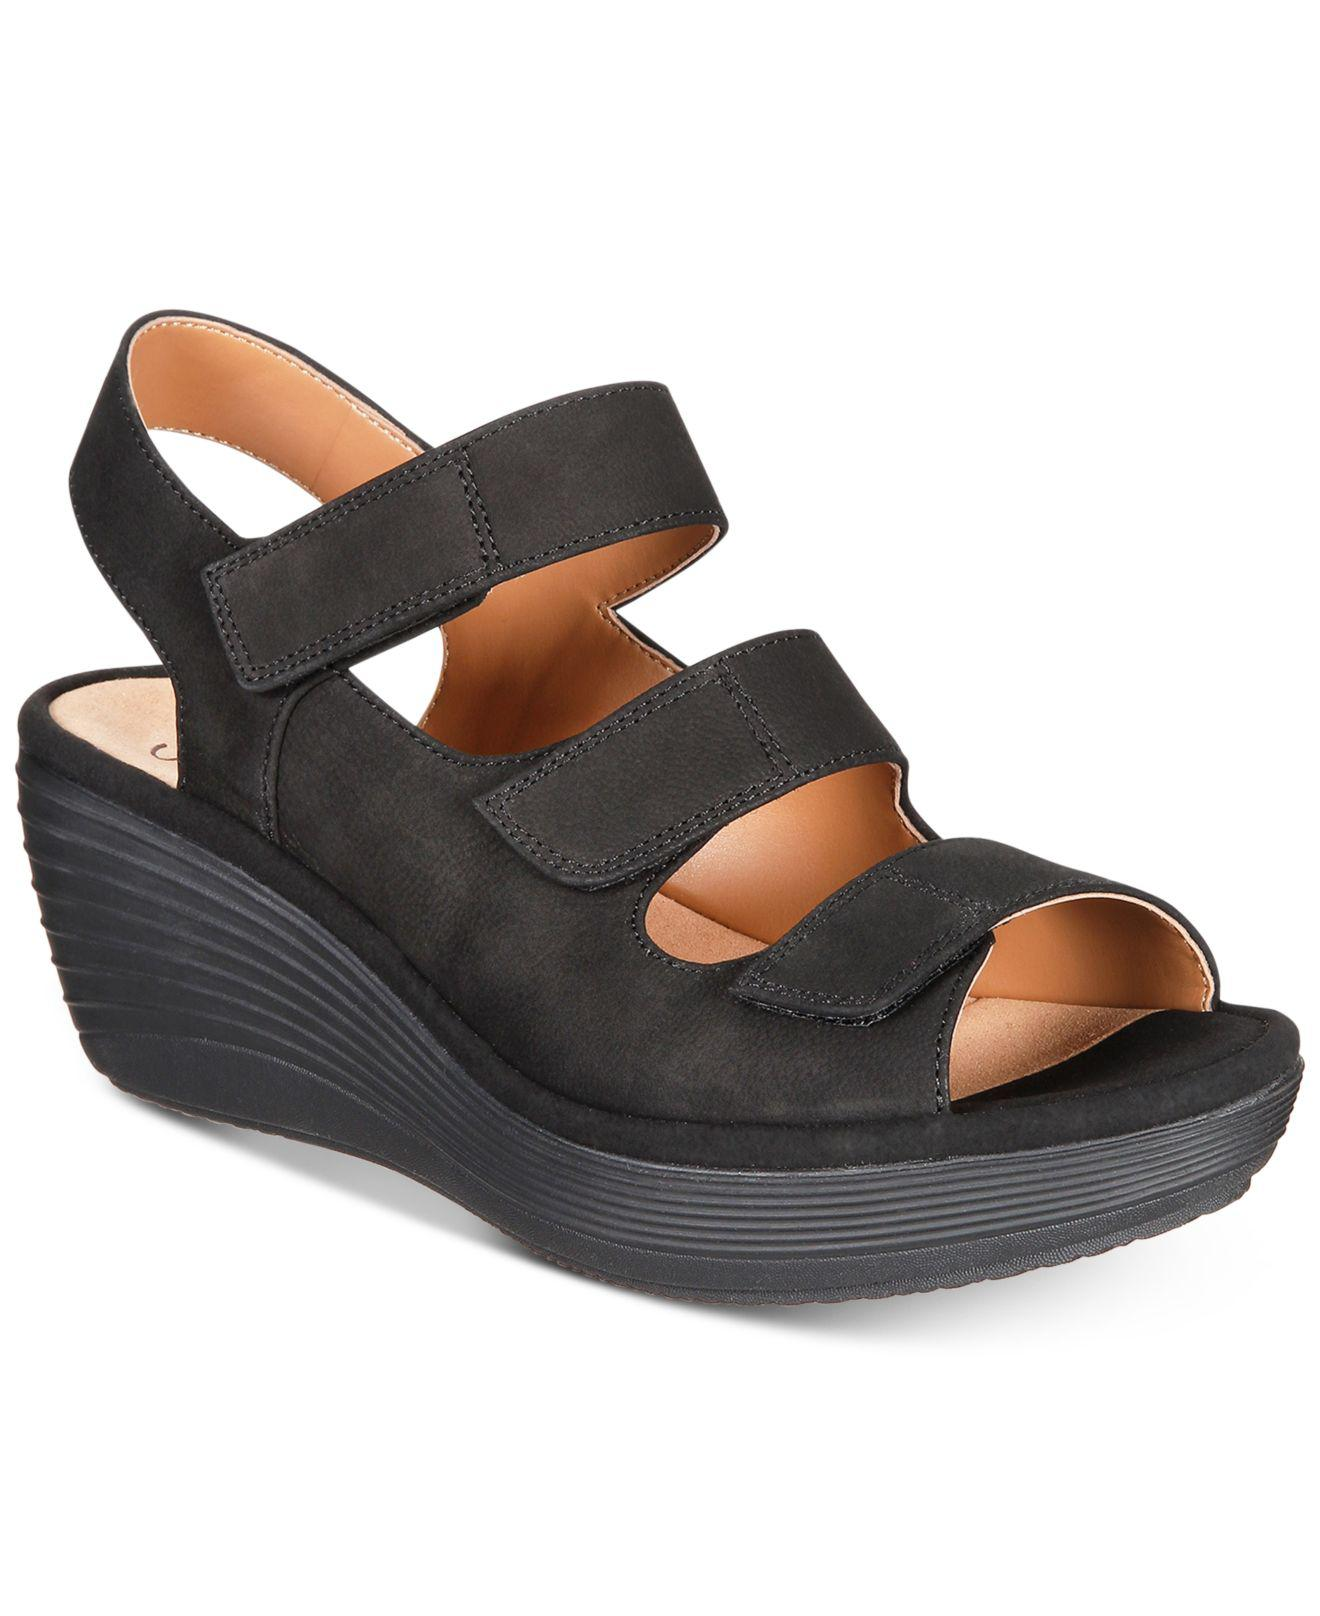 2cc4e3e864e Lyst - Clarks Women s Reedly Juno Wedge Sandals in Black